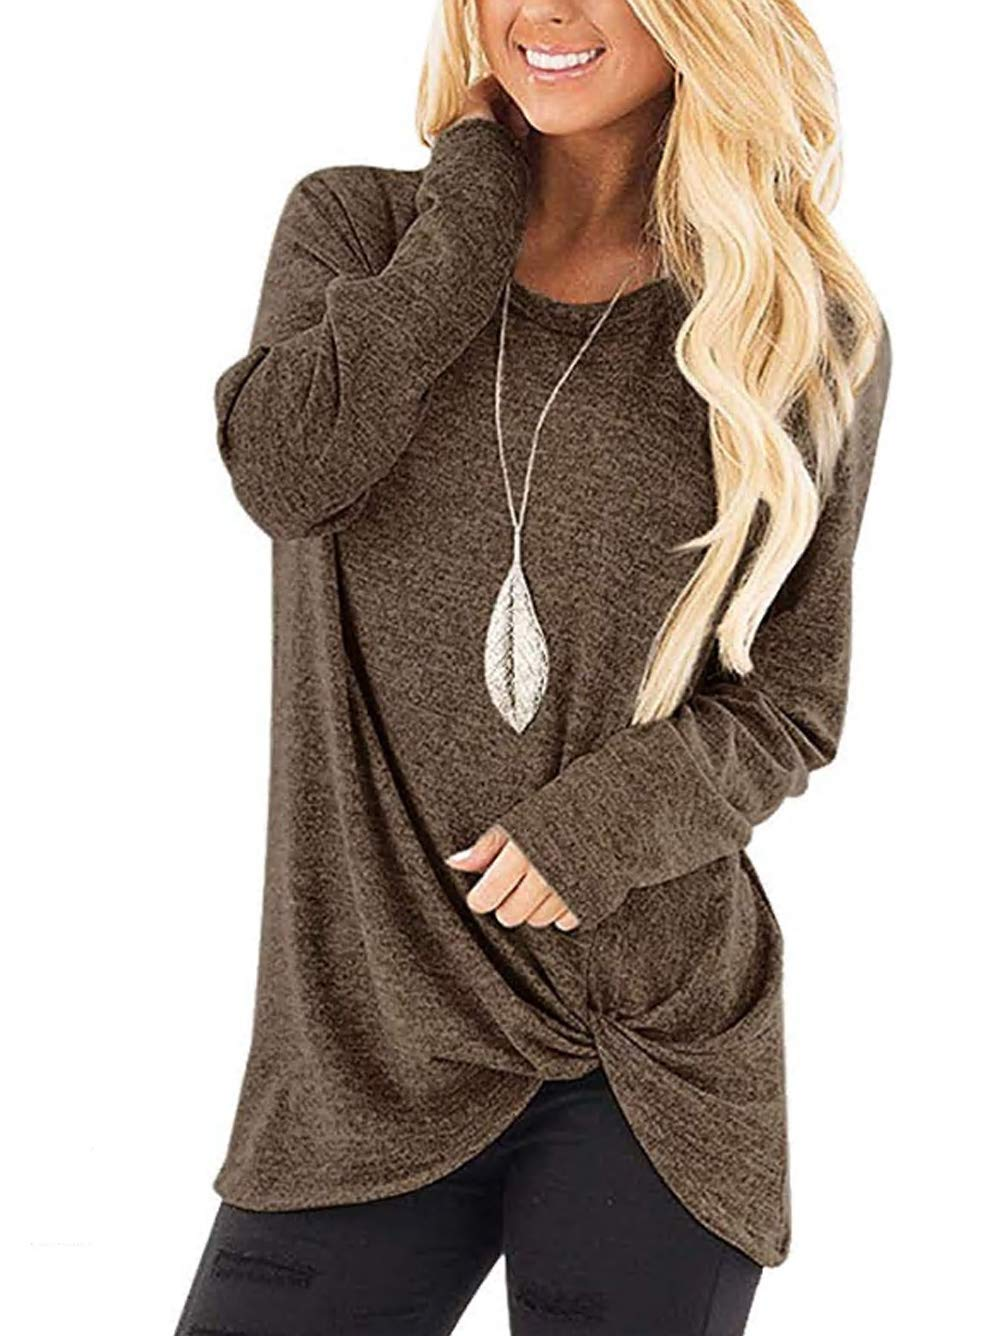 Famulily Women's Casual Soft Long Sleeves Knot Side Twist Knit Shirts Top Coffee XL